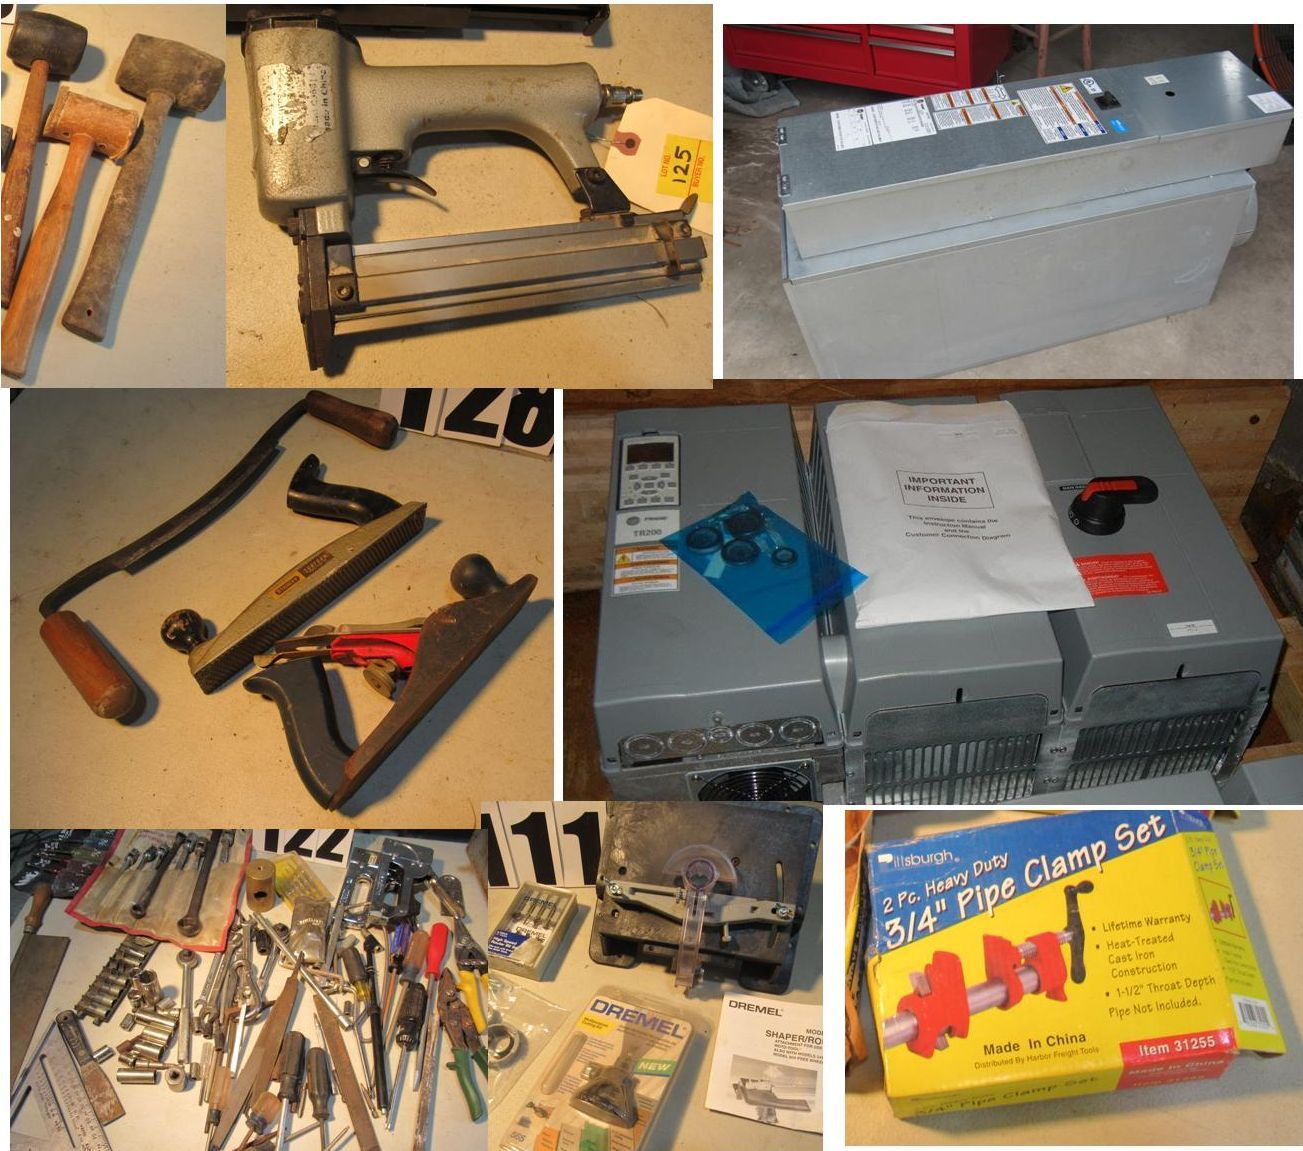 HVAC Equipment, Tools, Hardware